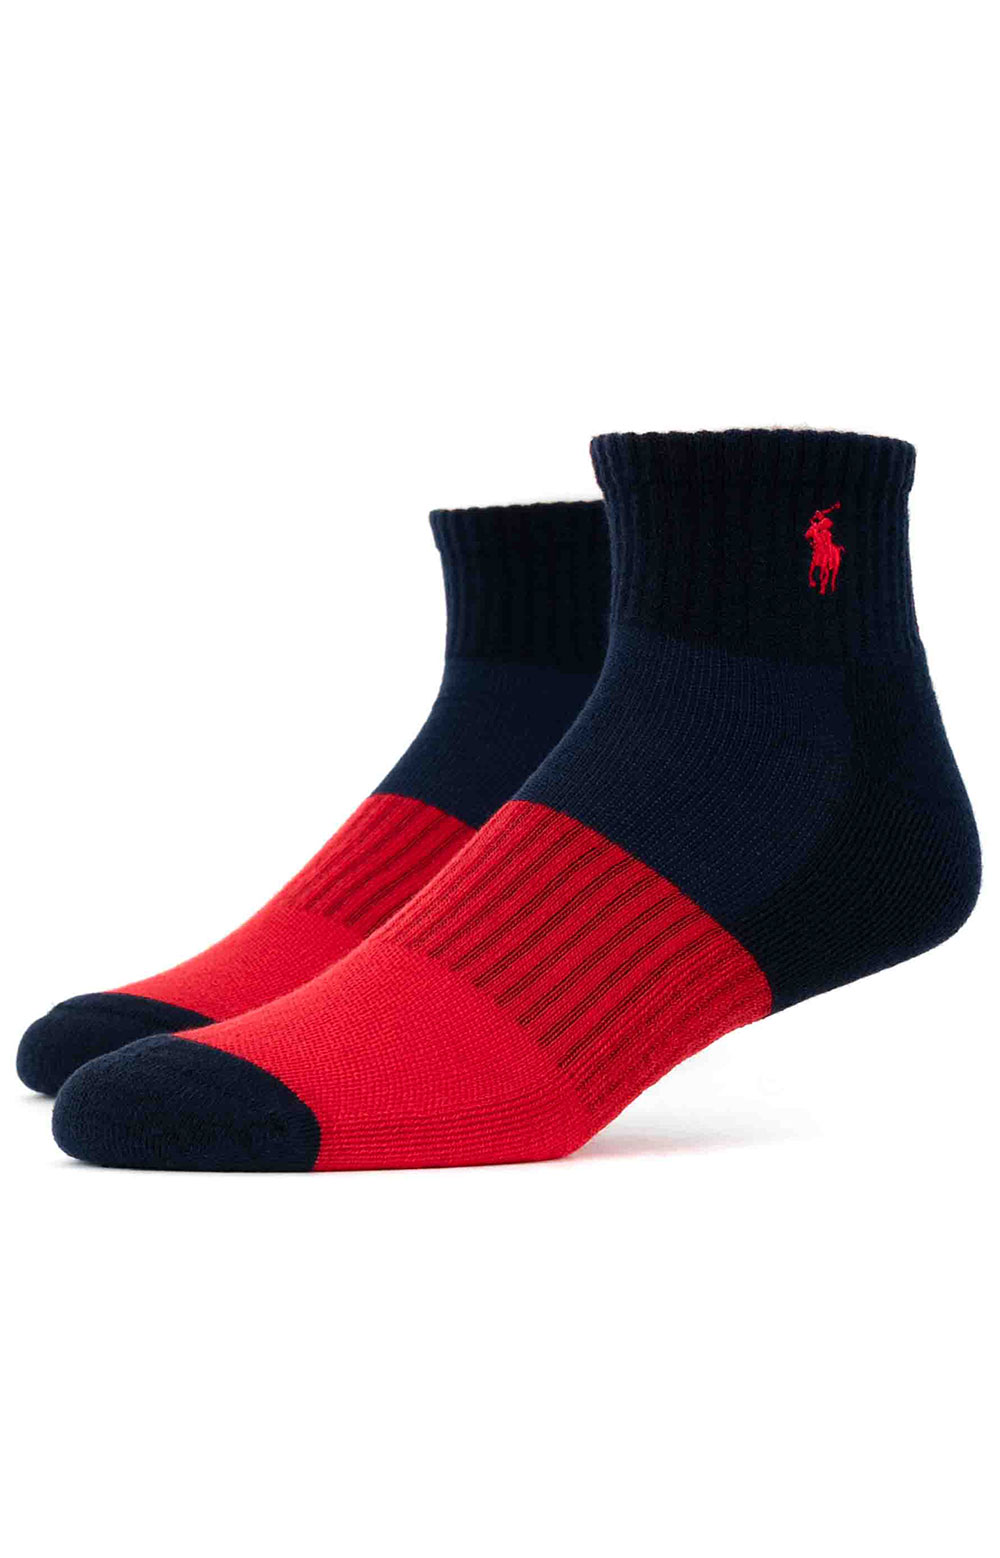 Colorblock Cushioned Quarter Socks - 6 Pack 8